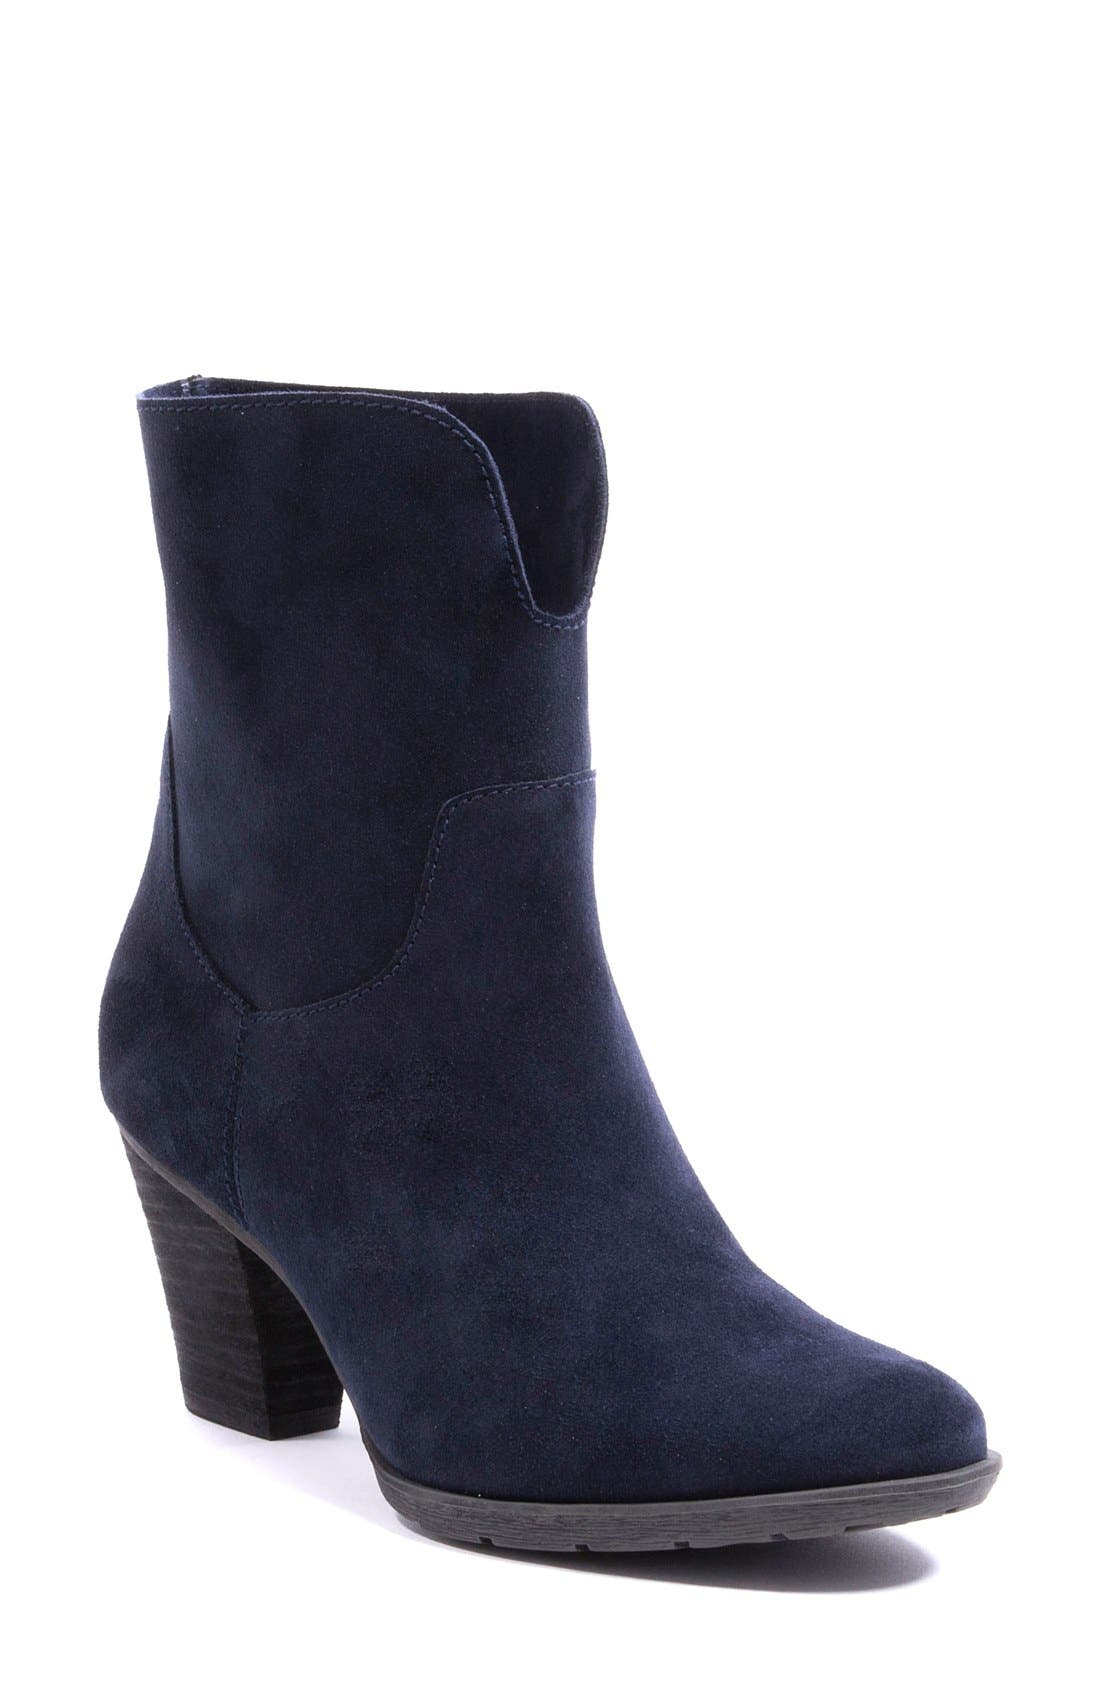 Fay Waterproof Ankle Boot,                             Main thumbnail 1, color,                             Navy Suede